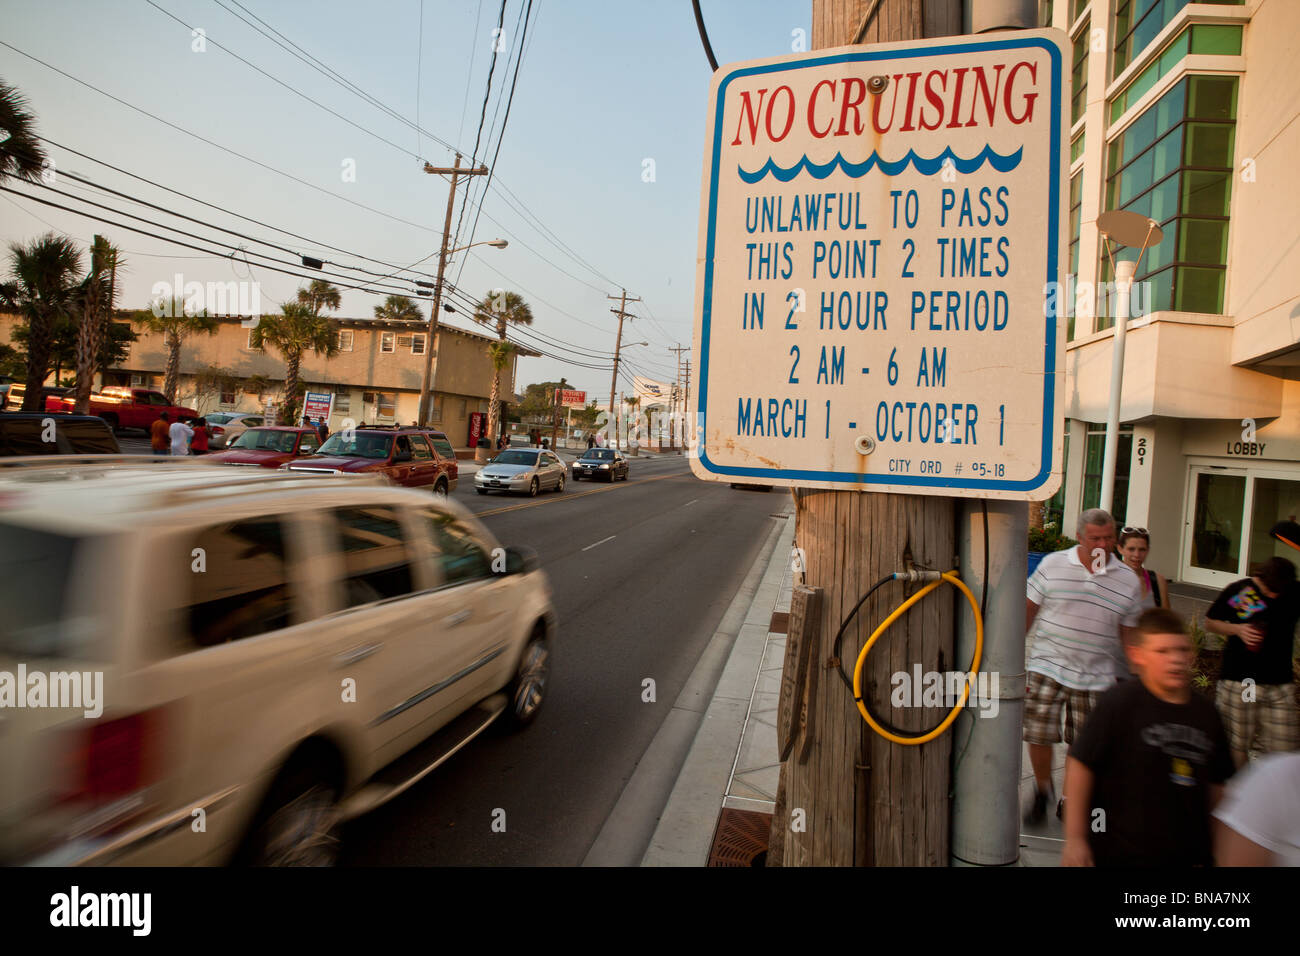 Sign forbidding cruising by car along the beach strip in Myrtle Beach, SC. - Stock Image